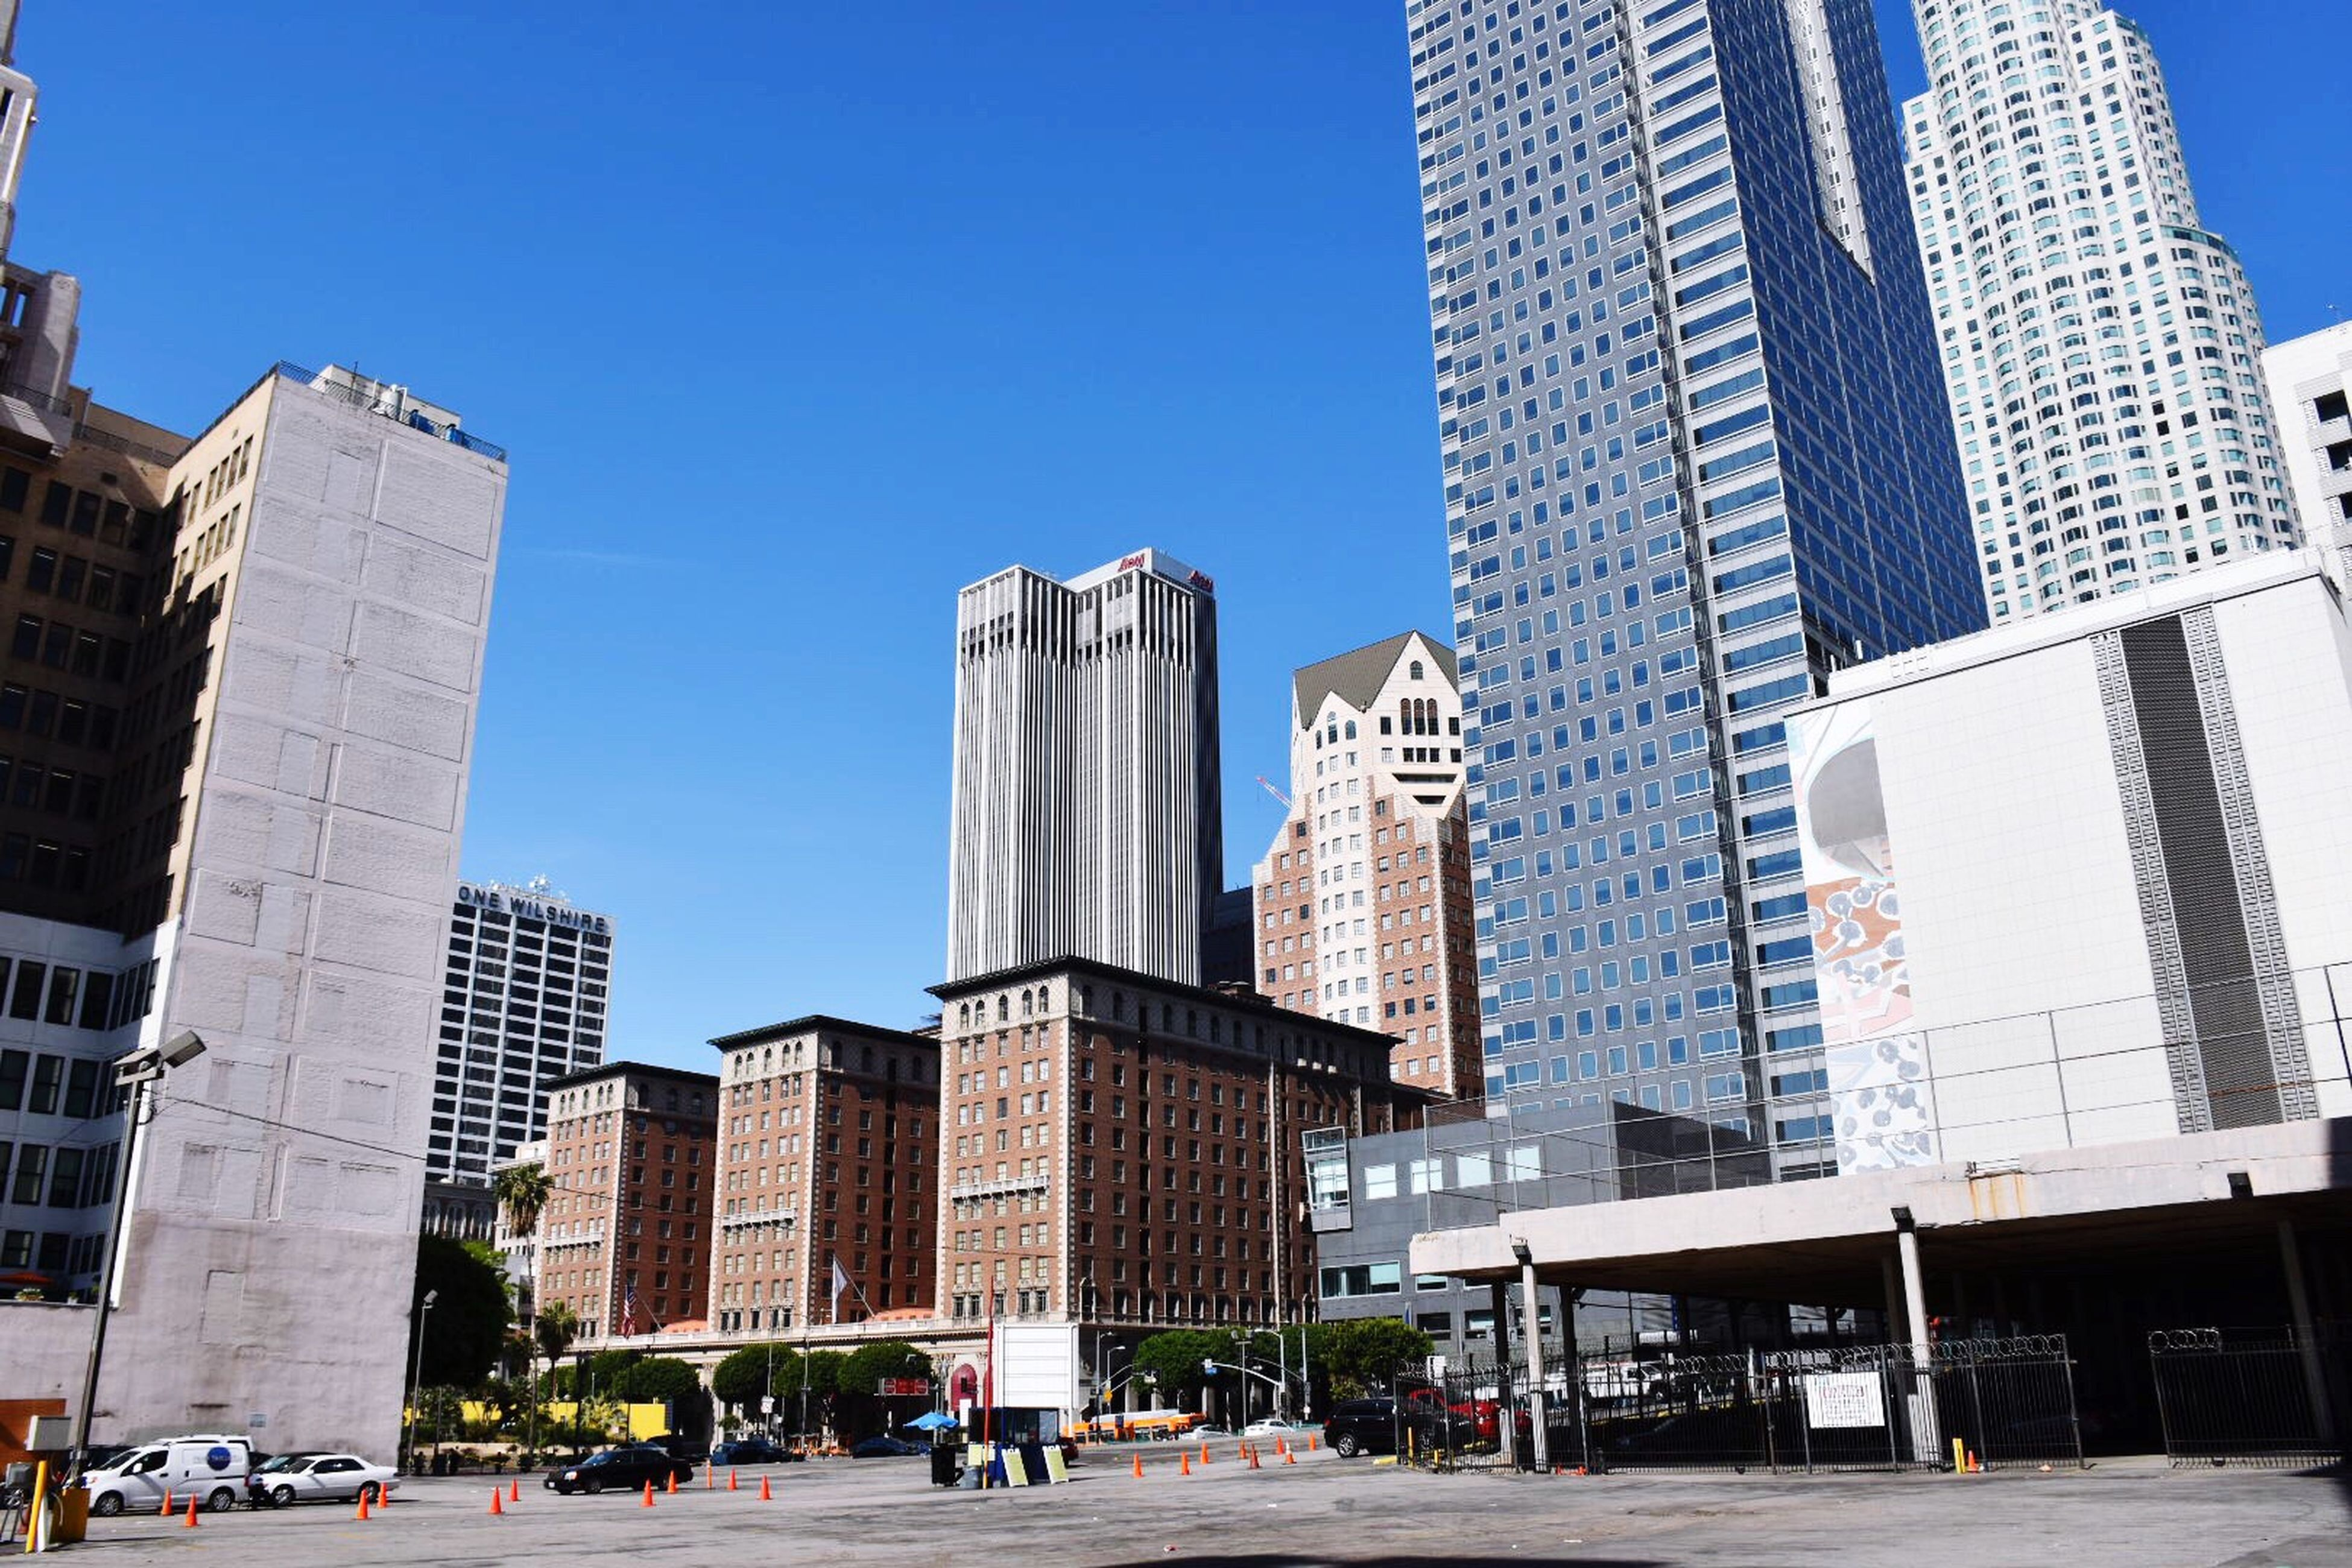 building exterior, architecture, built structure, city, clear sky, blue, skyscraper, office building, tower, tall - high, modern, sunlight, building, city life, low angle view, street, day, incidental people, copy space, road